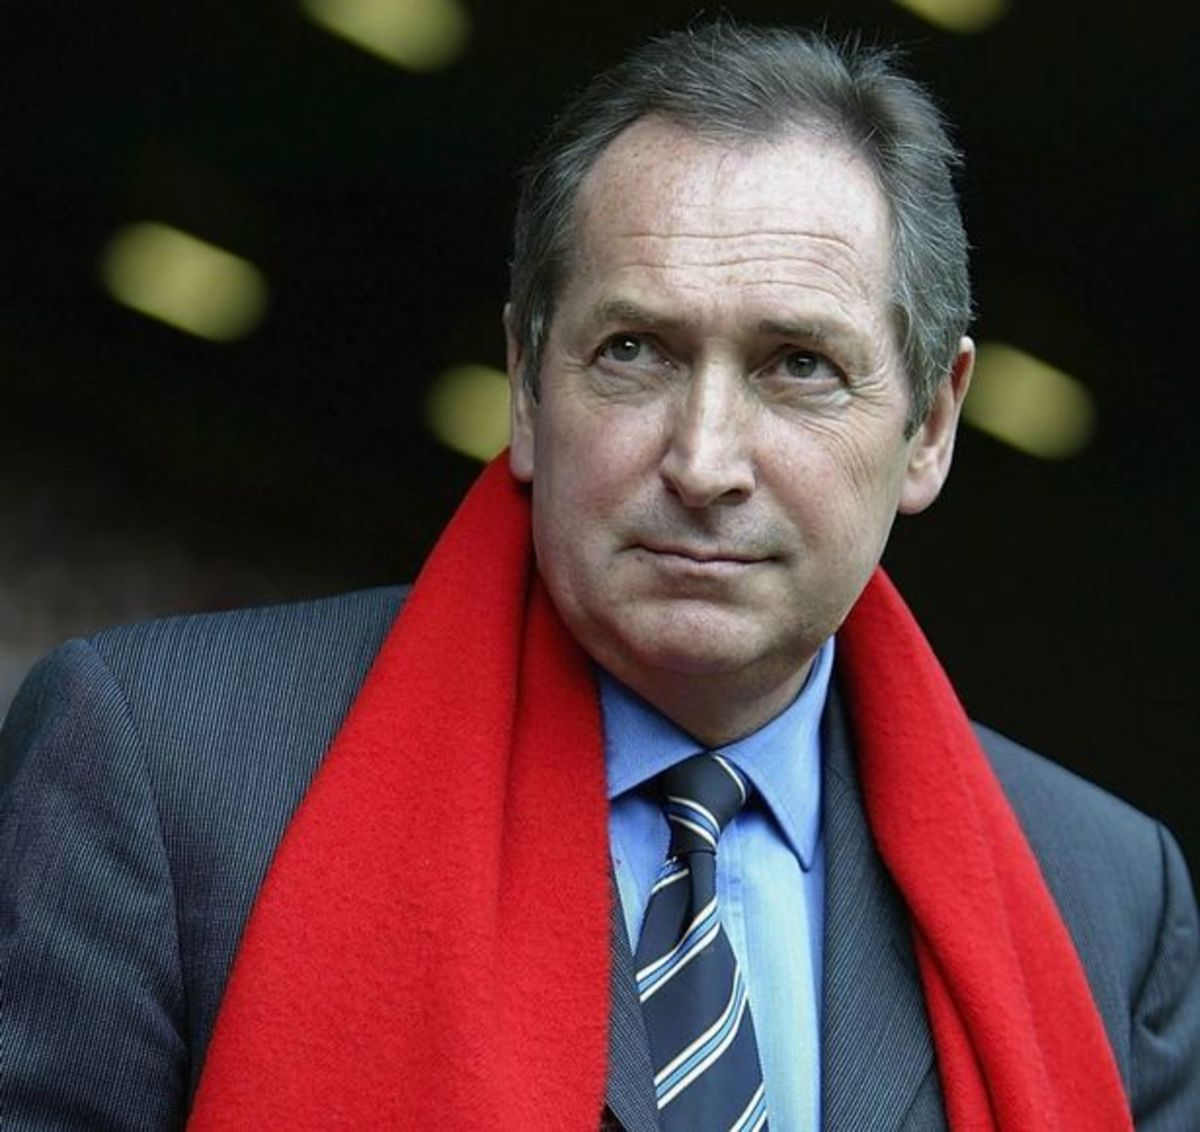 Gerard Houllier during his reign as Manager of Liverpool Fc